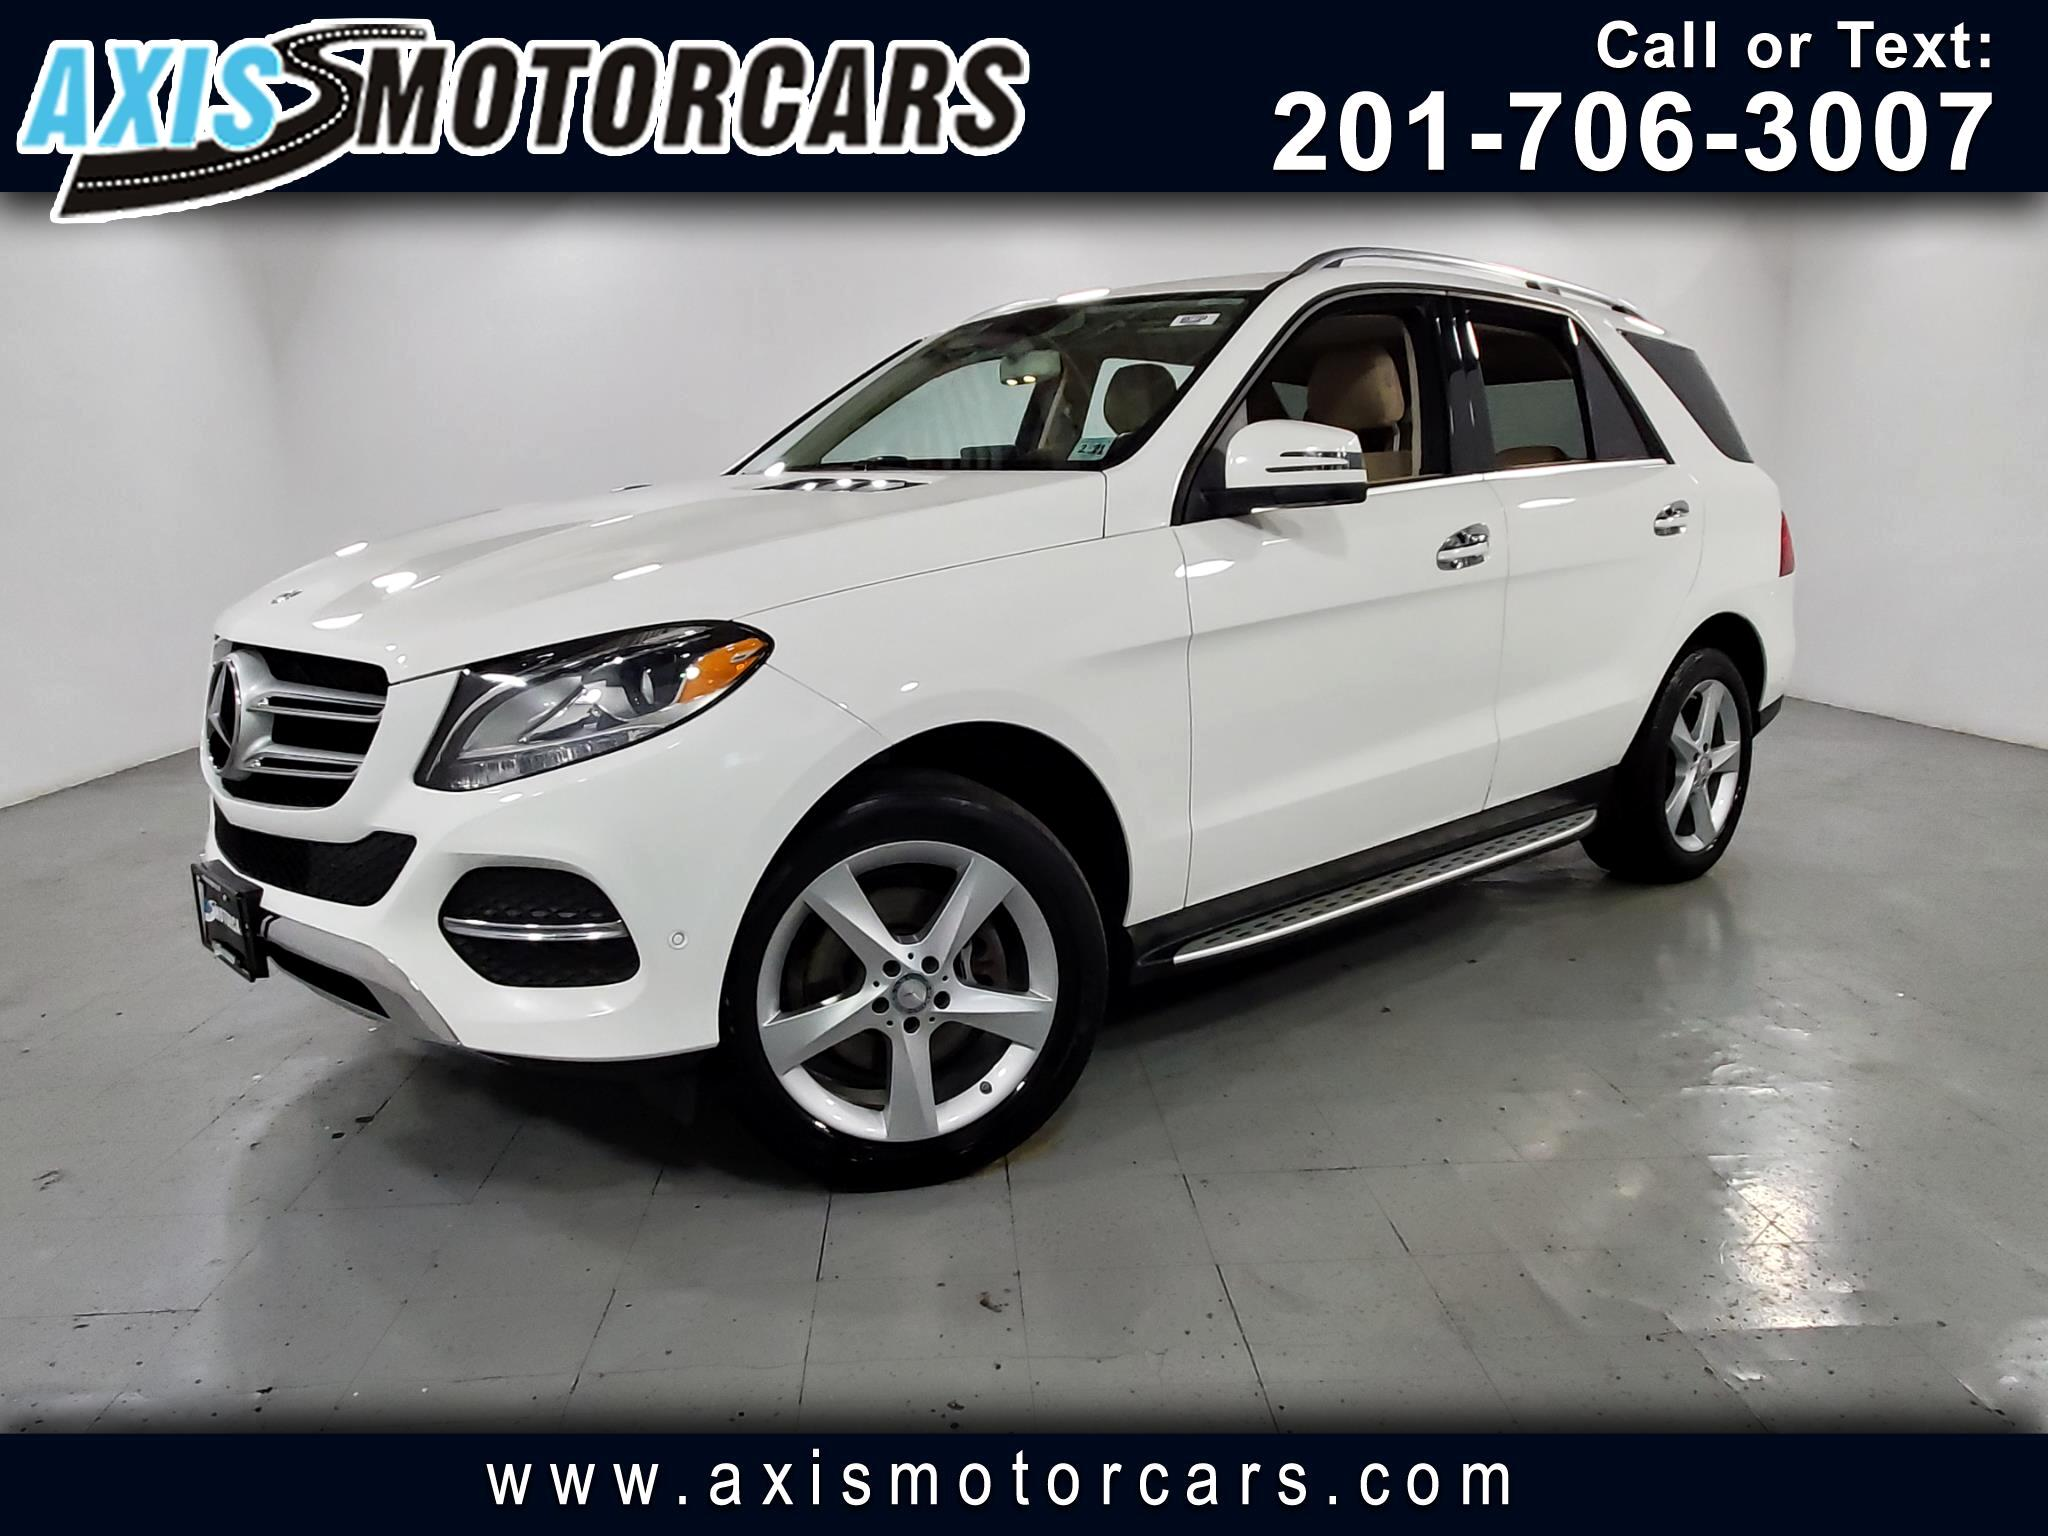 2016 Mercedes-Benz GLE 350 w/Navigation Bakup Camera 360